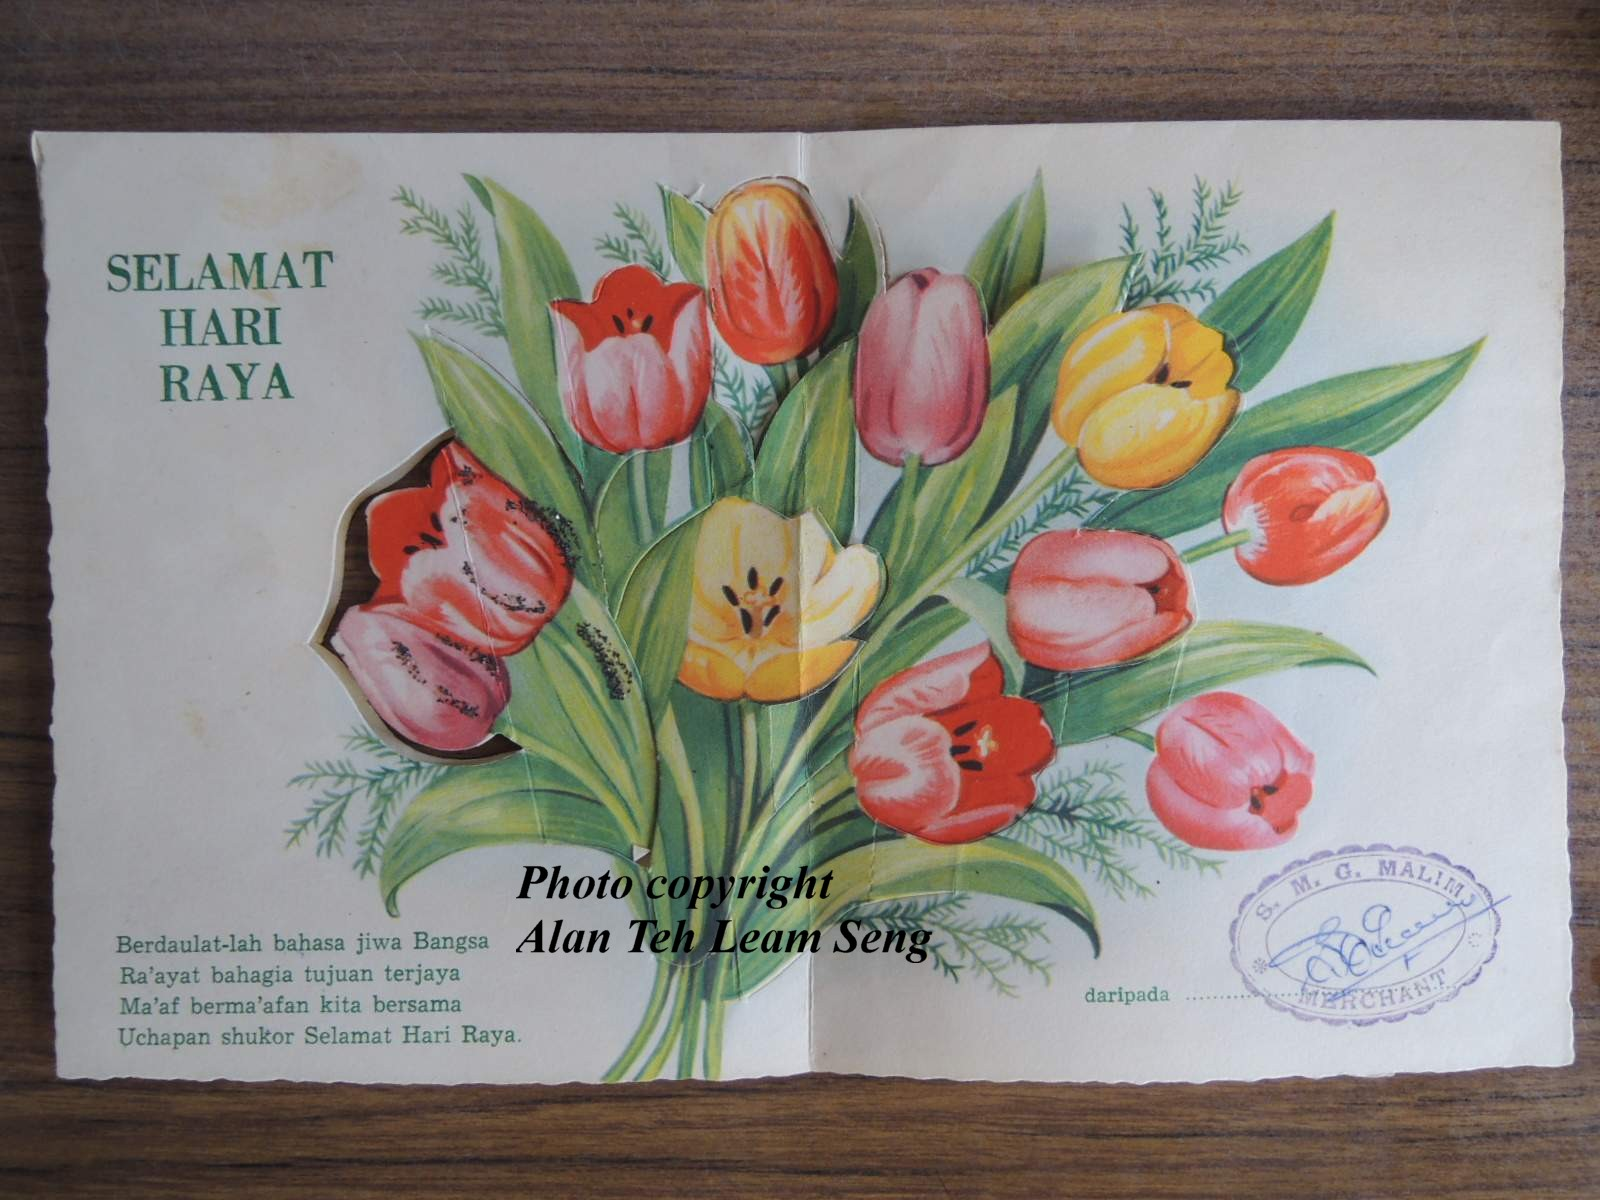 My travels 18 days to hari raya two vintage greeting cards from in the past greeting cards were mostly printed abroad in places like the uk and germany m4hsunfo